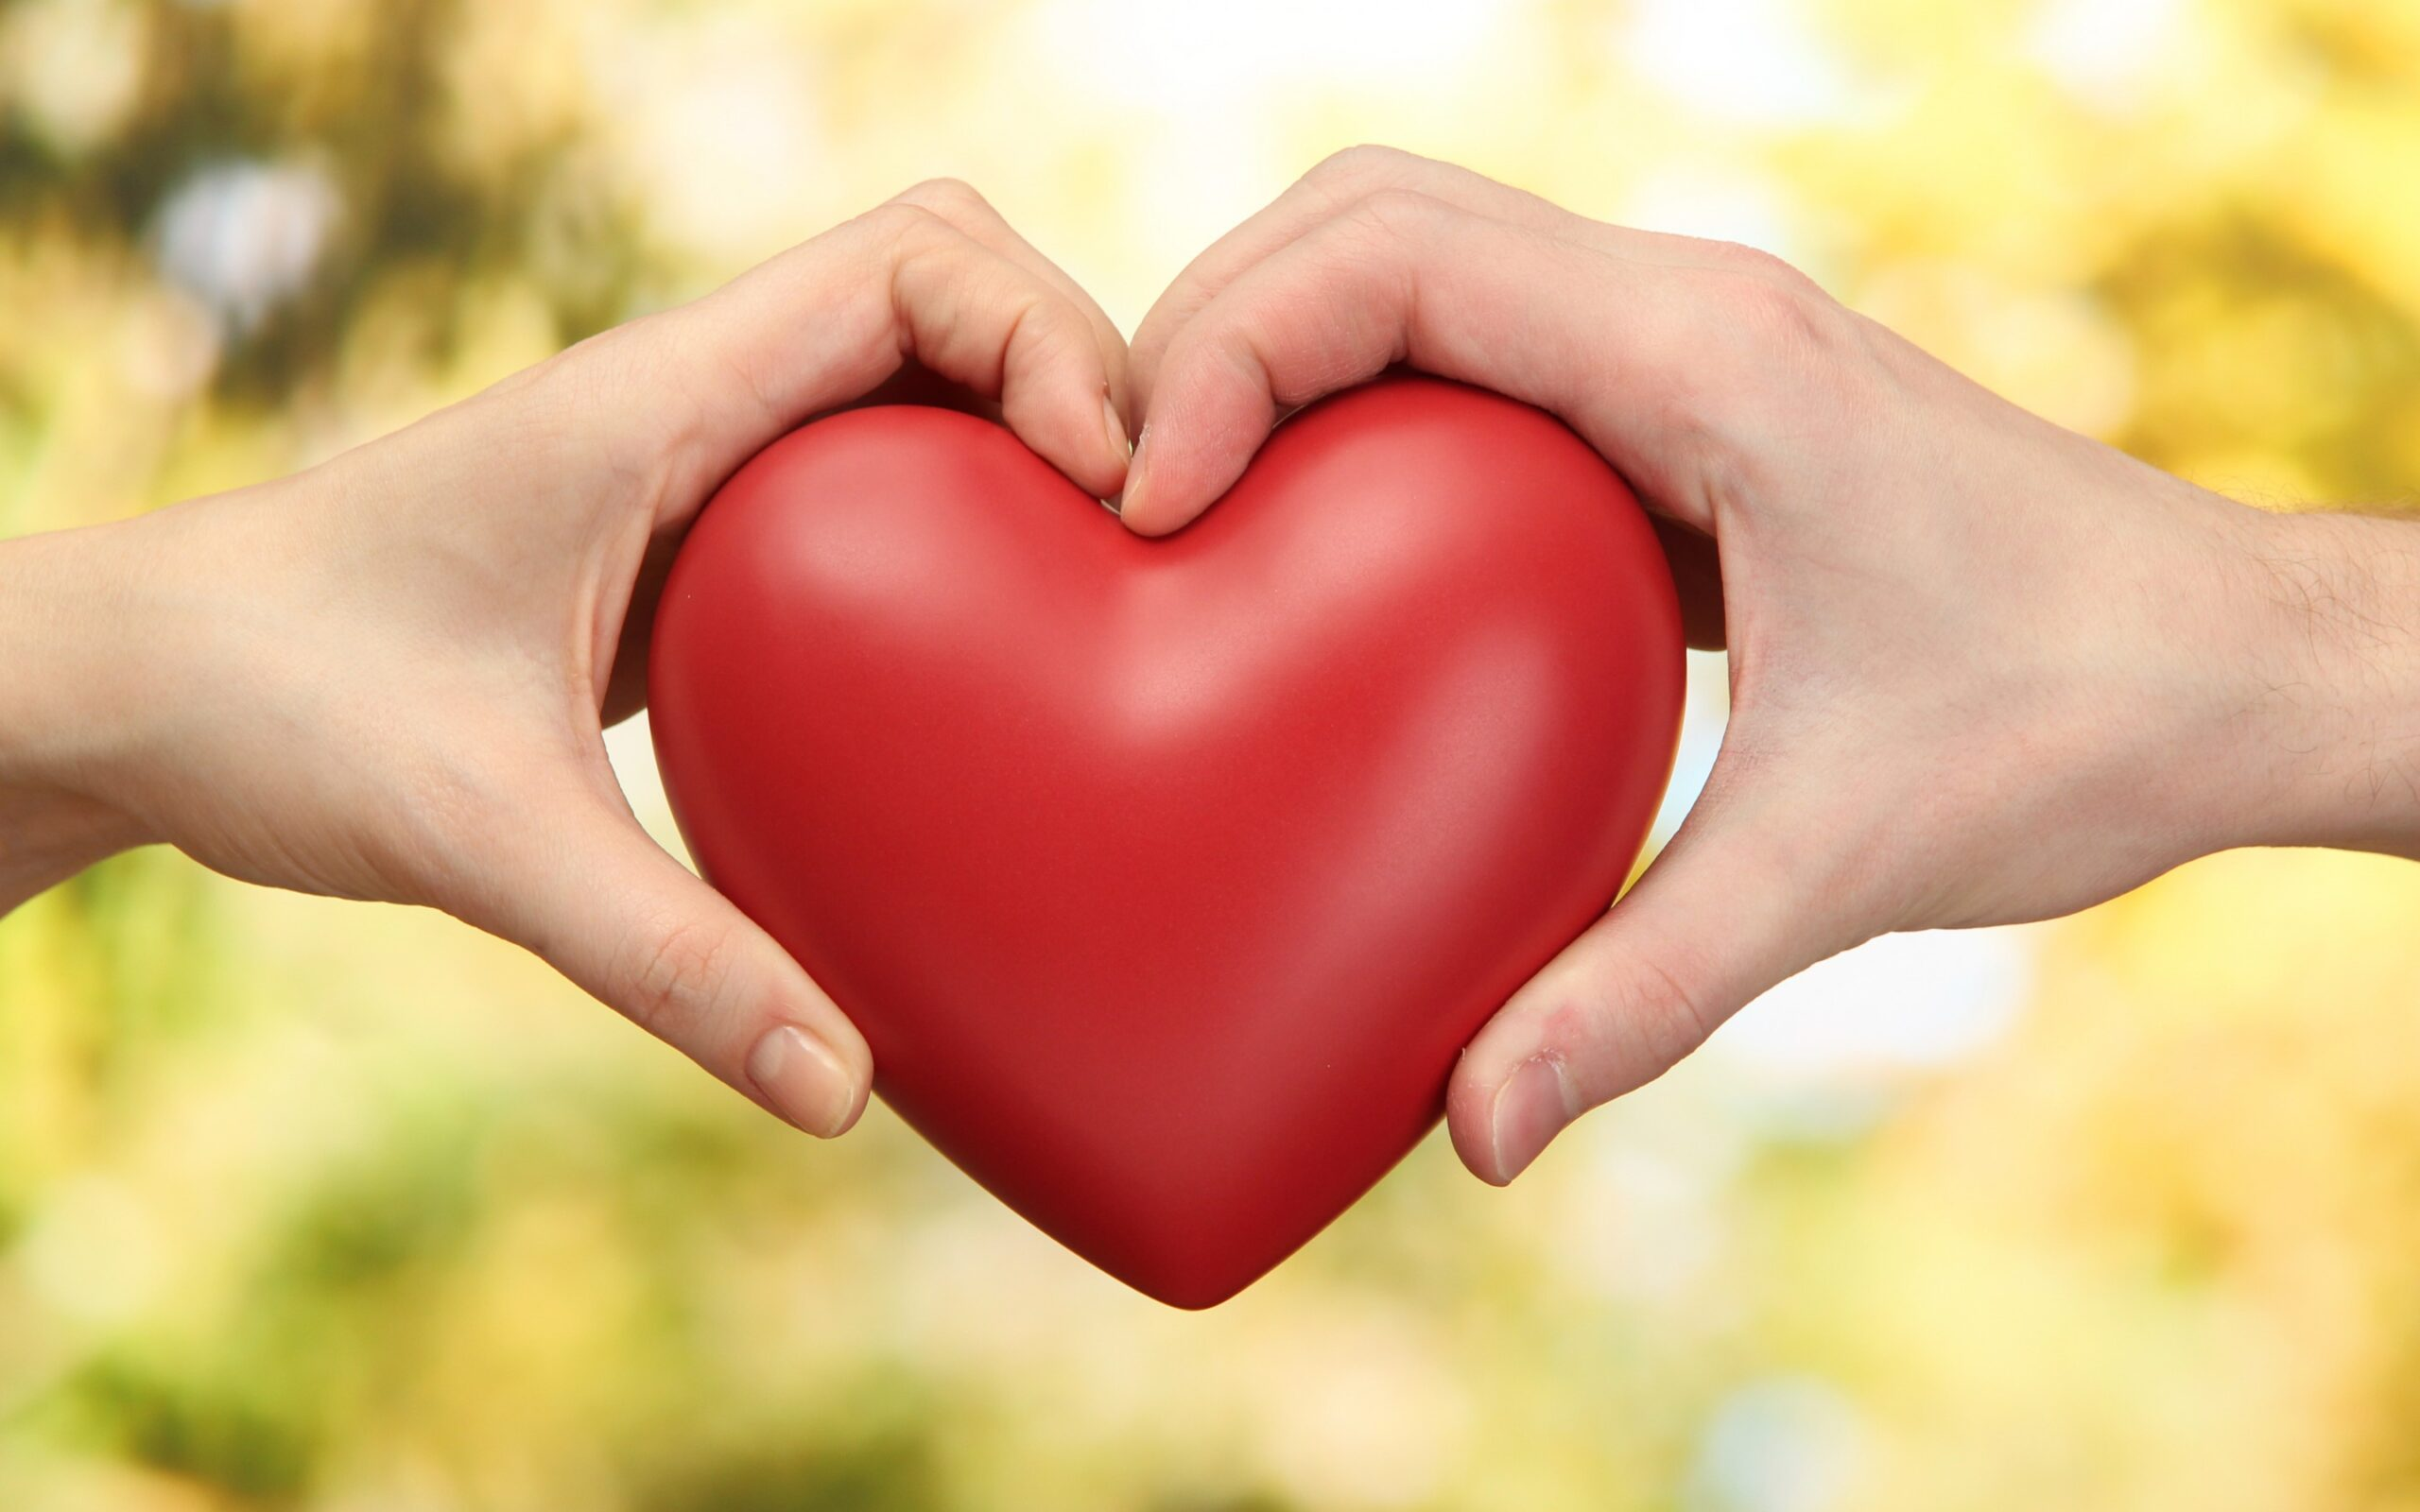 Romantic Love Poems - Giving Feeling Some Words And See The Depth